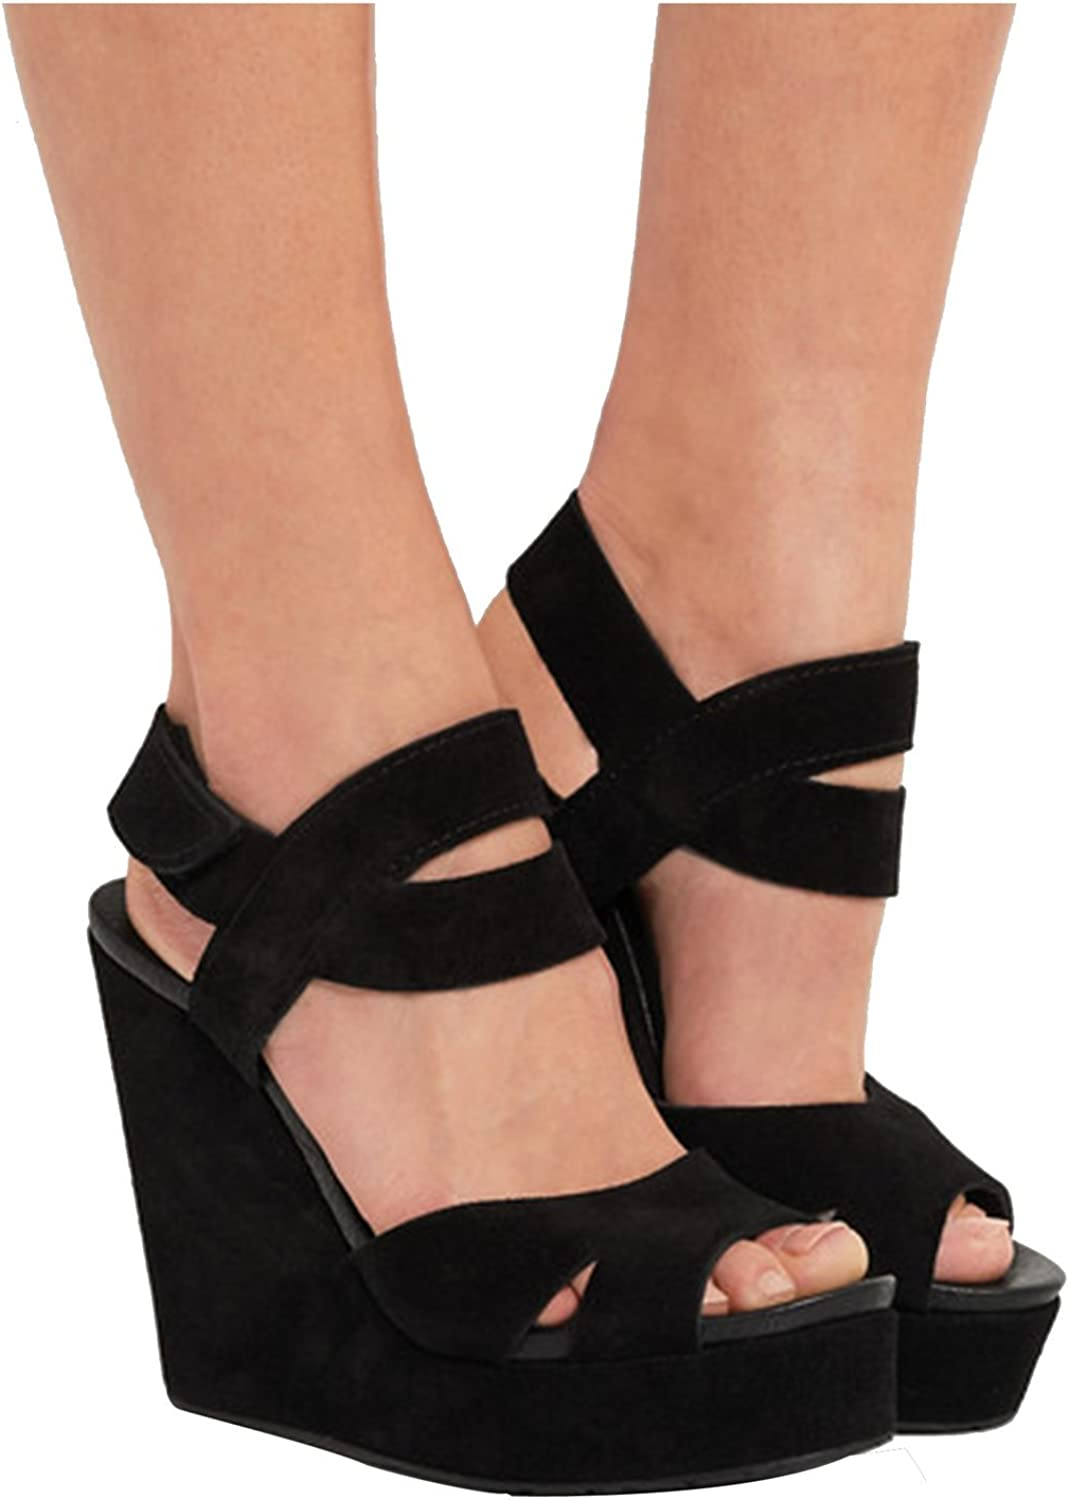 Kevin Fashion KLSDN208 Women's Wedge High Heel Suede Club Party Evening Sandals